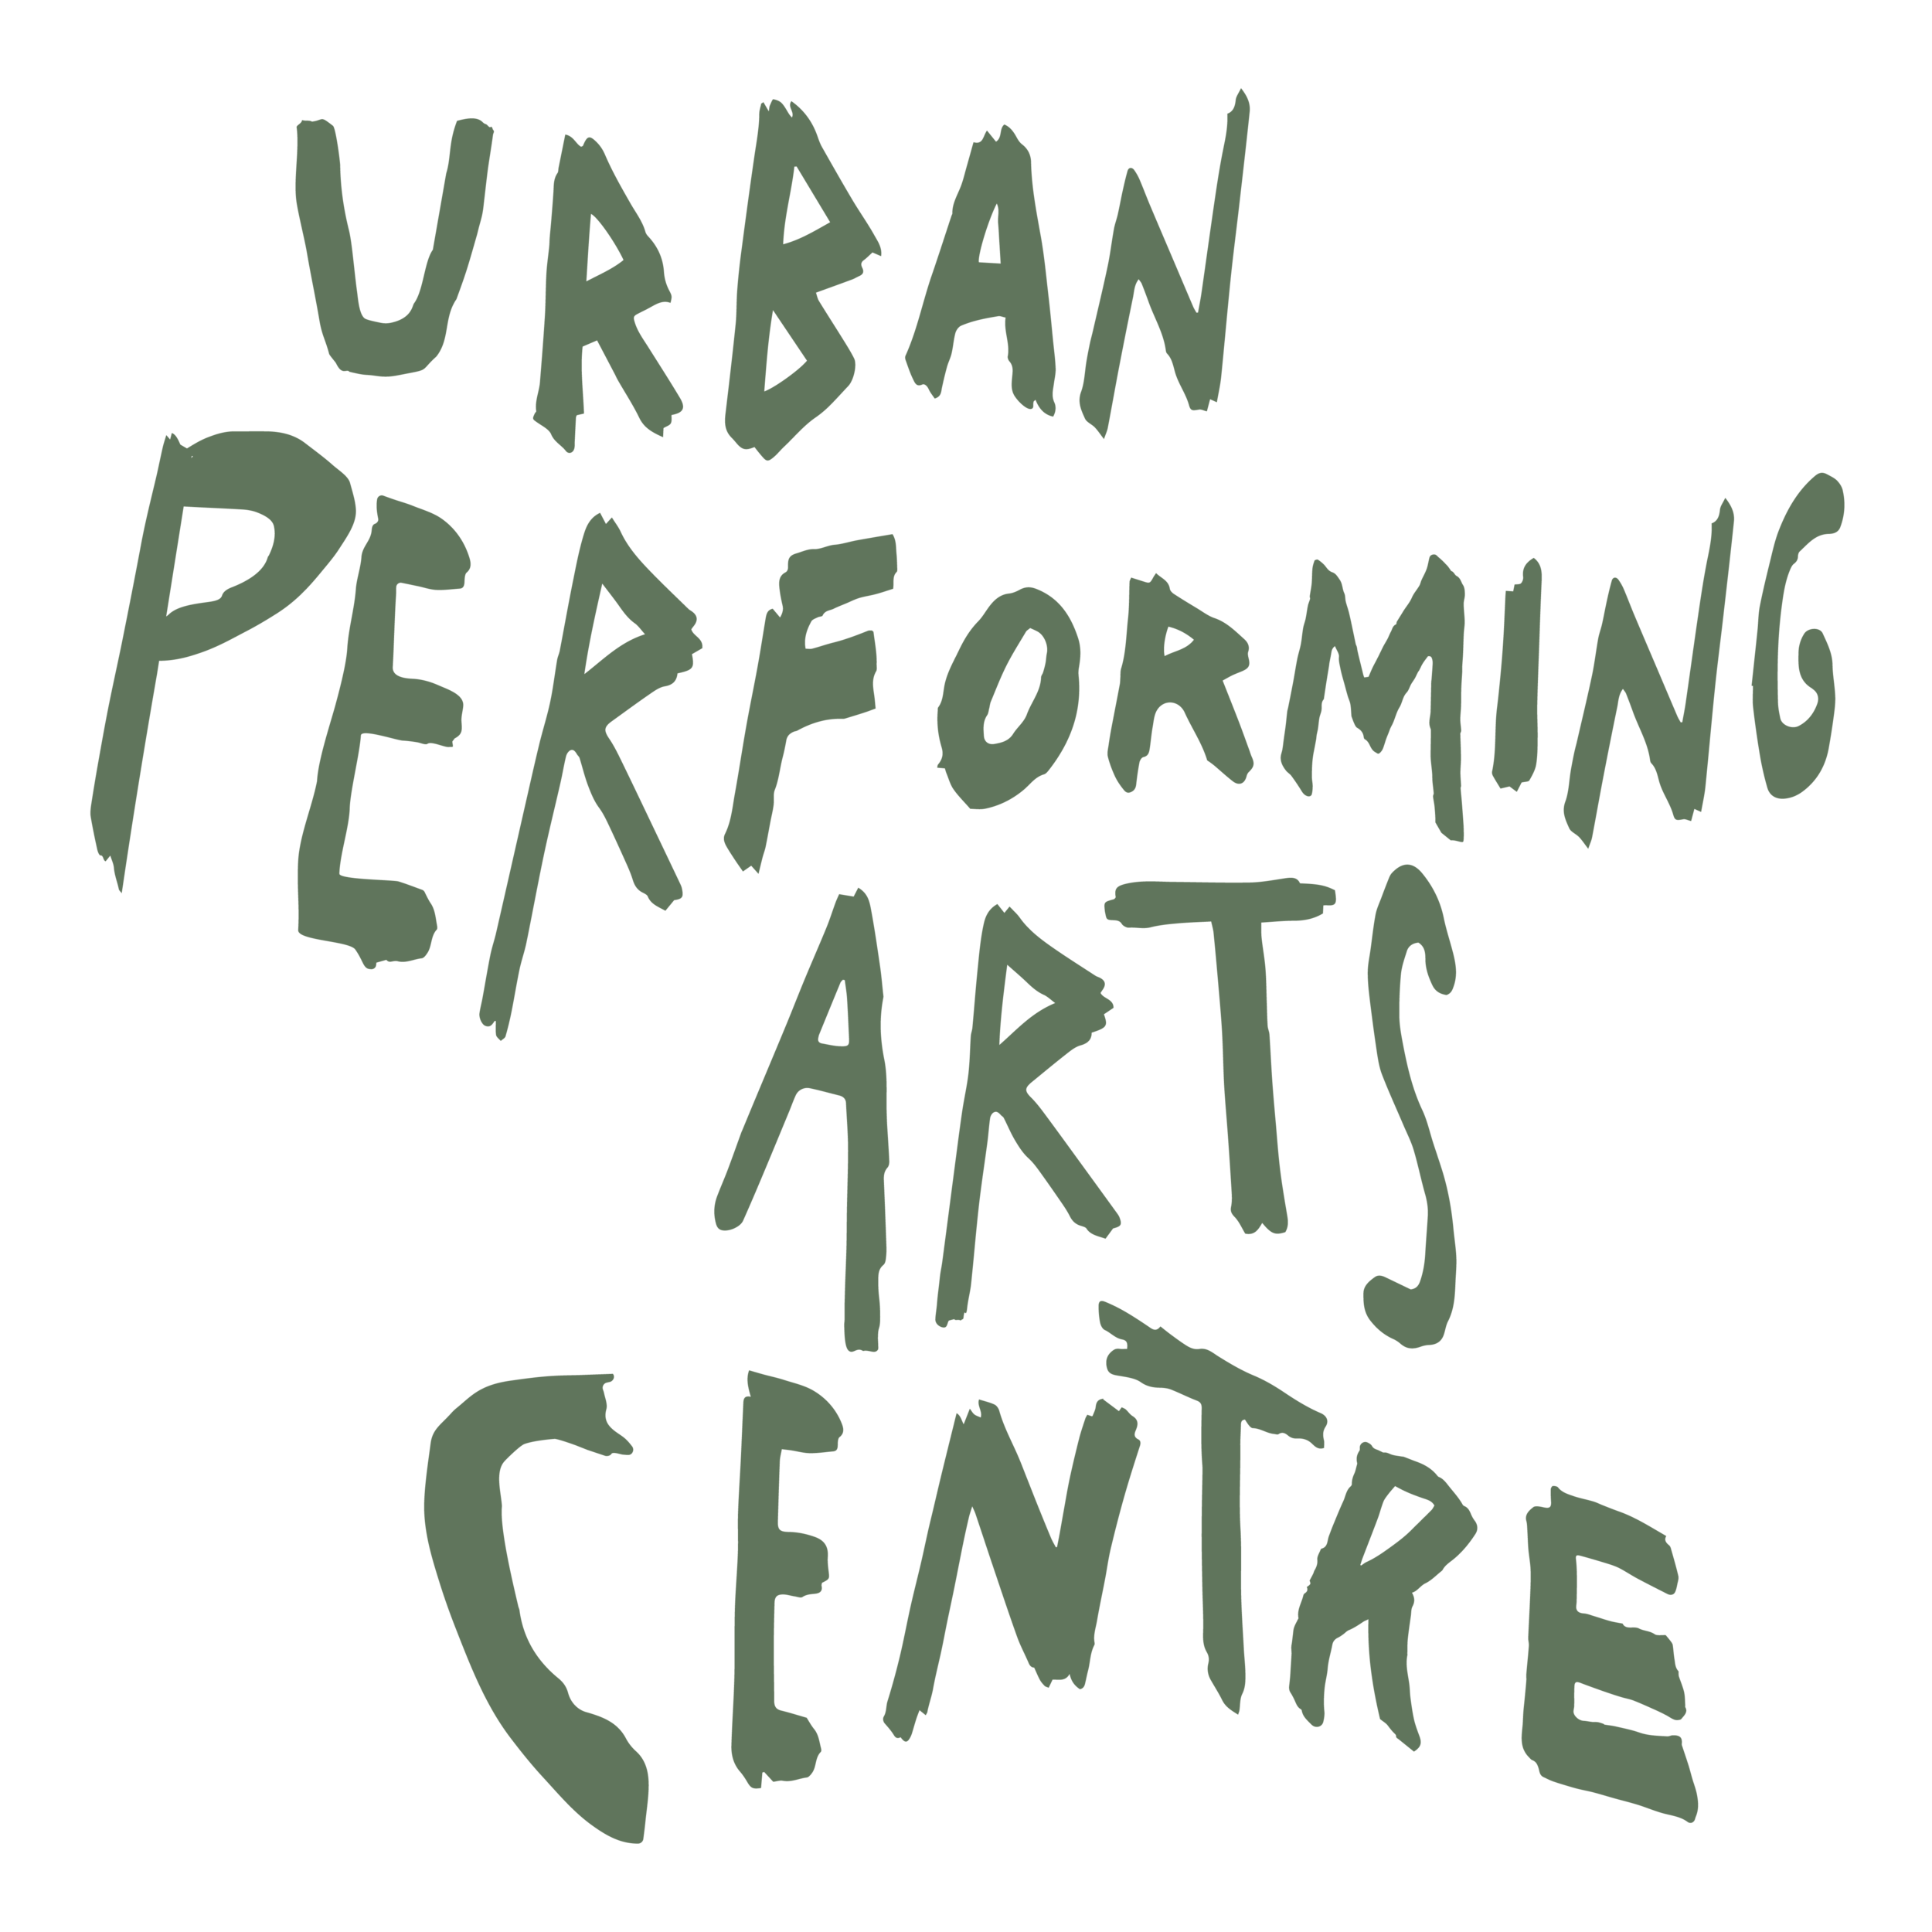 URBAN_PERFORMING_ARTS_CENTRE.png